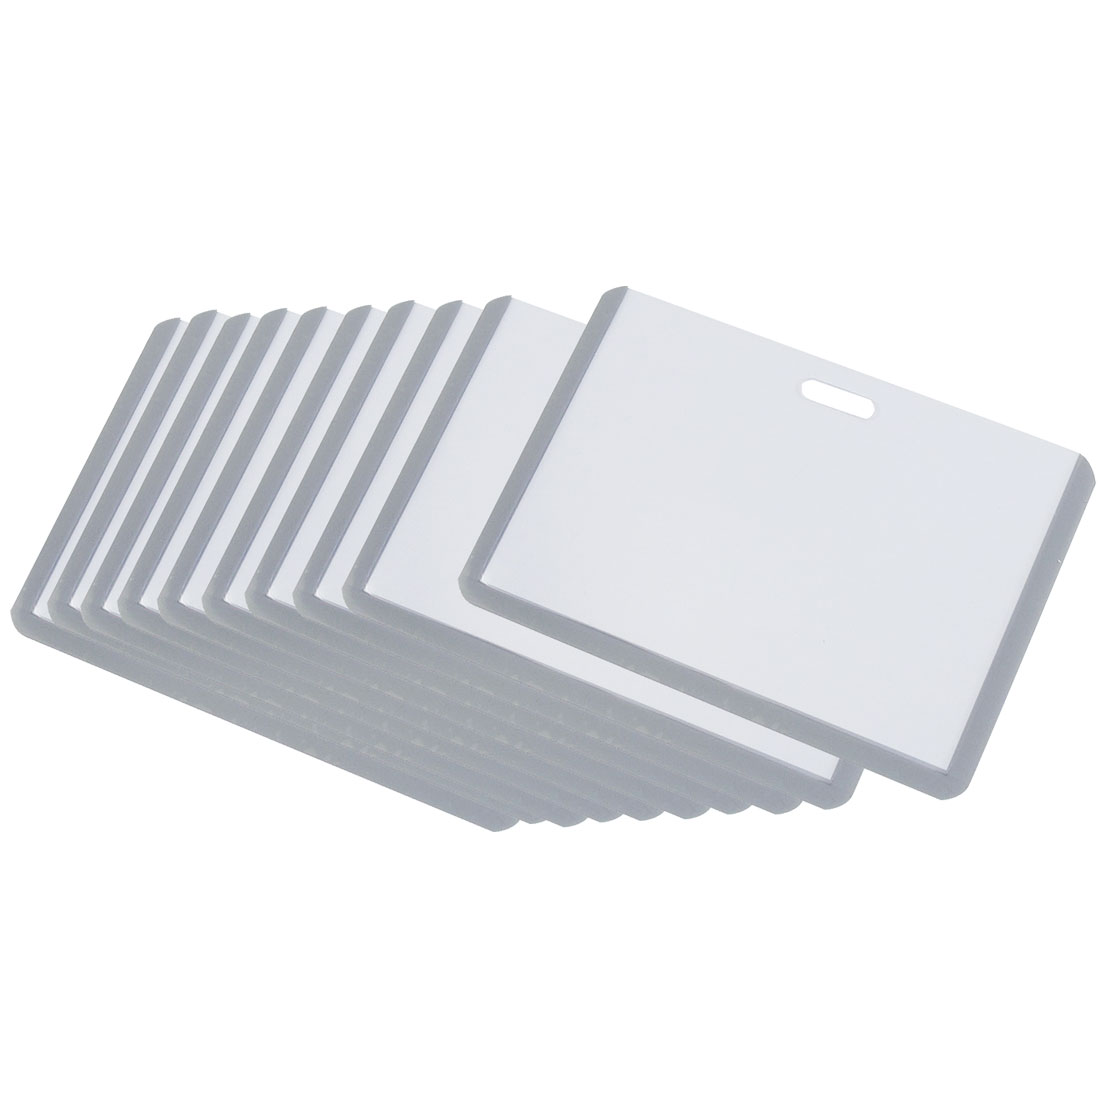 10PCS Gray Clear Plastic Horizontal Business Name ID Badge Credit Card Holders